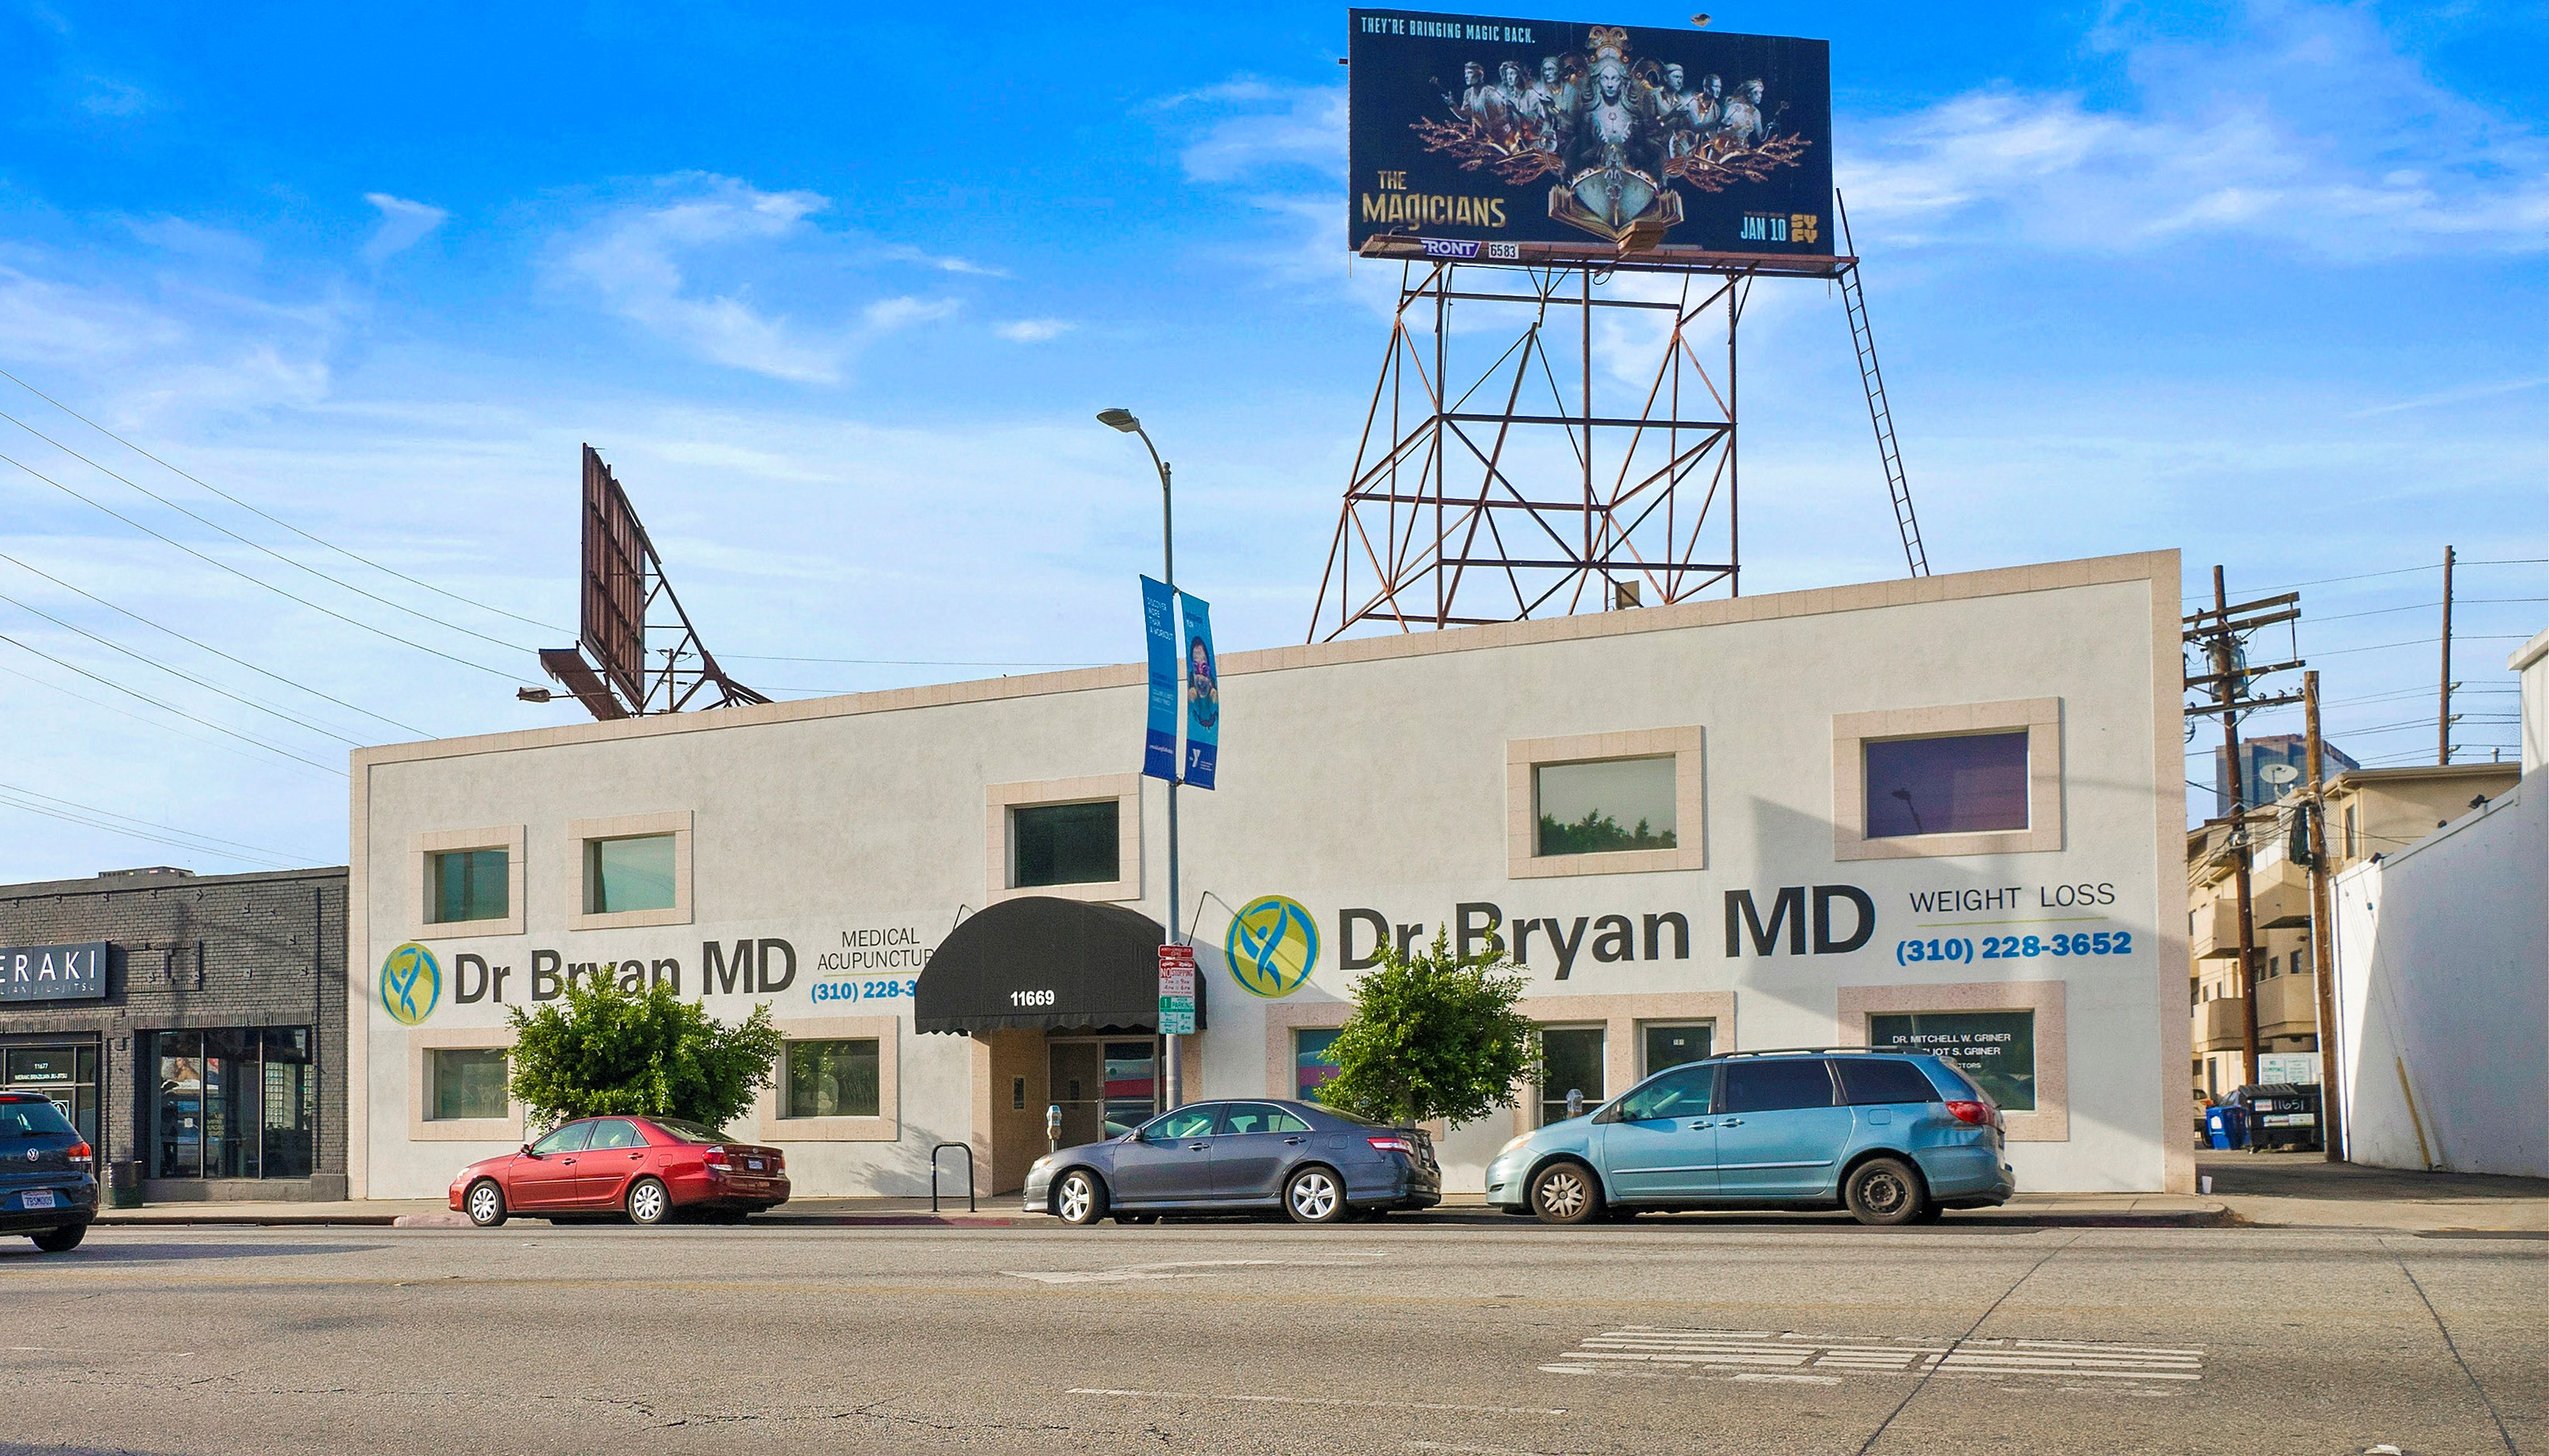 COLDWELL BANKER COMMERCIAL WESTMAC ARRANGES $4.7 MILLION SALE OF MEDICAL-OFFICE BUILDING IN WEST LOS ANGELES, CA